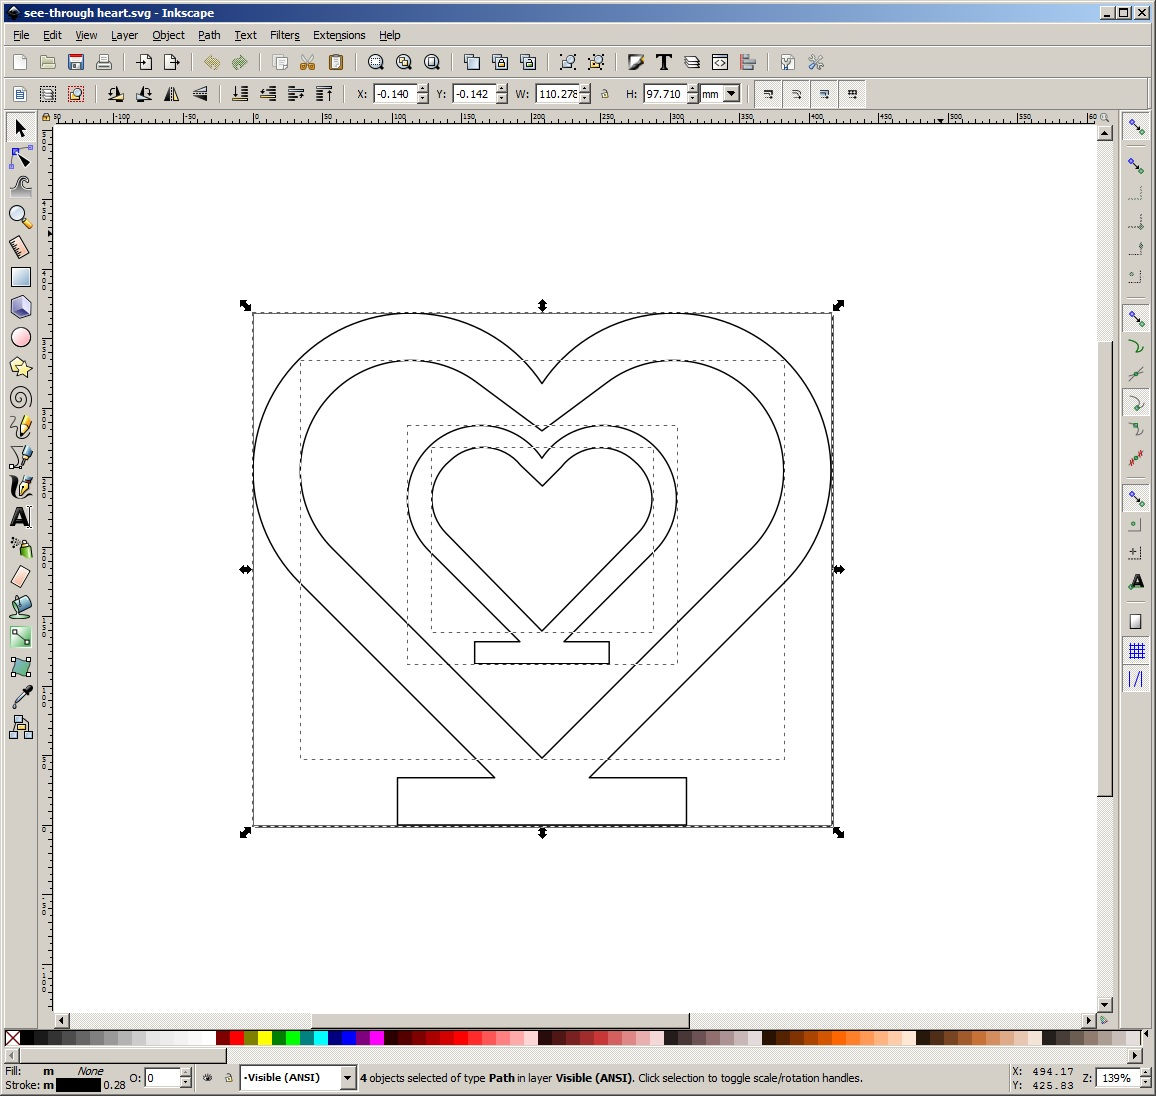 see-through heart-inkscape.jpg